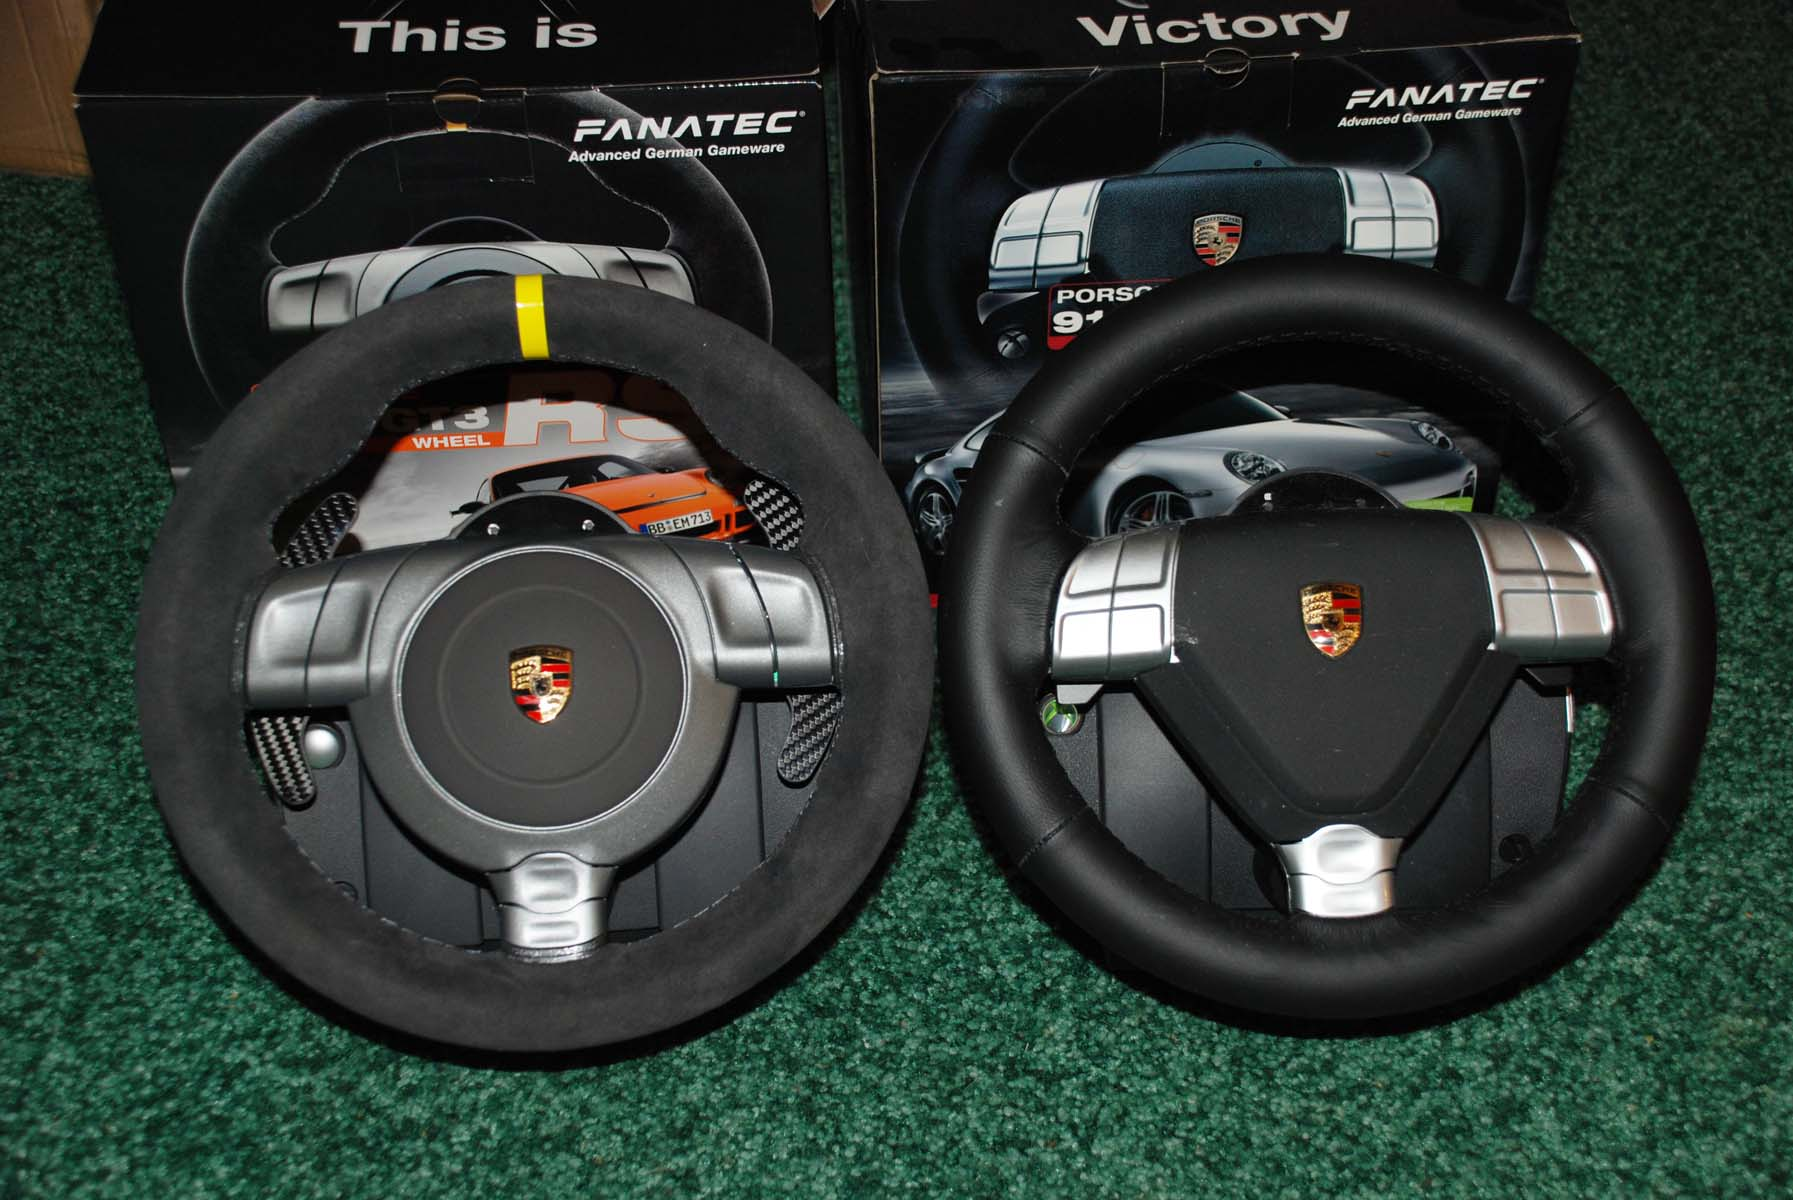 911 turbo s wheel vs 911 gt3 rs v2 fanatec insidesimracing forums. Black Bedroom Furniture Sets. Home Design Ideas